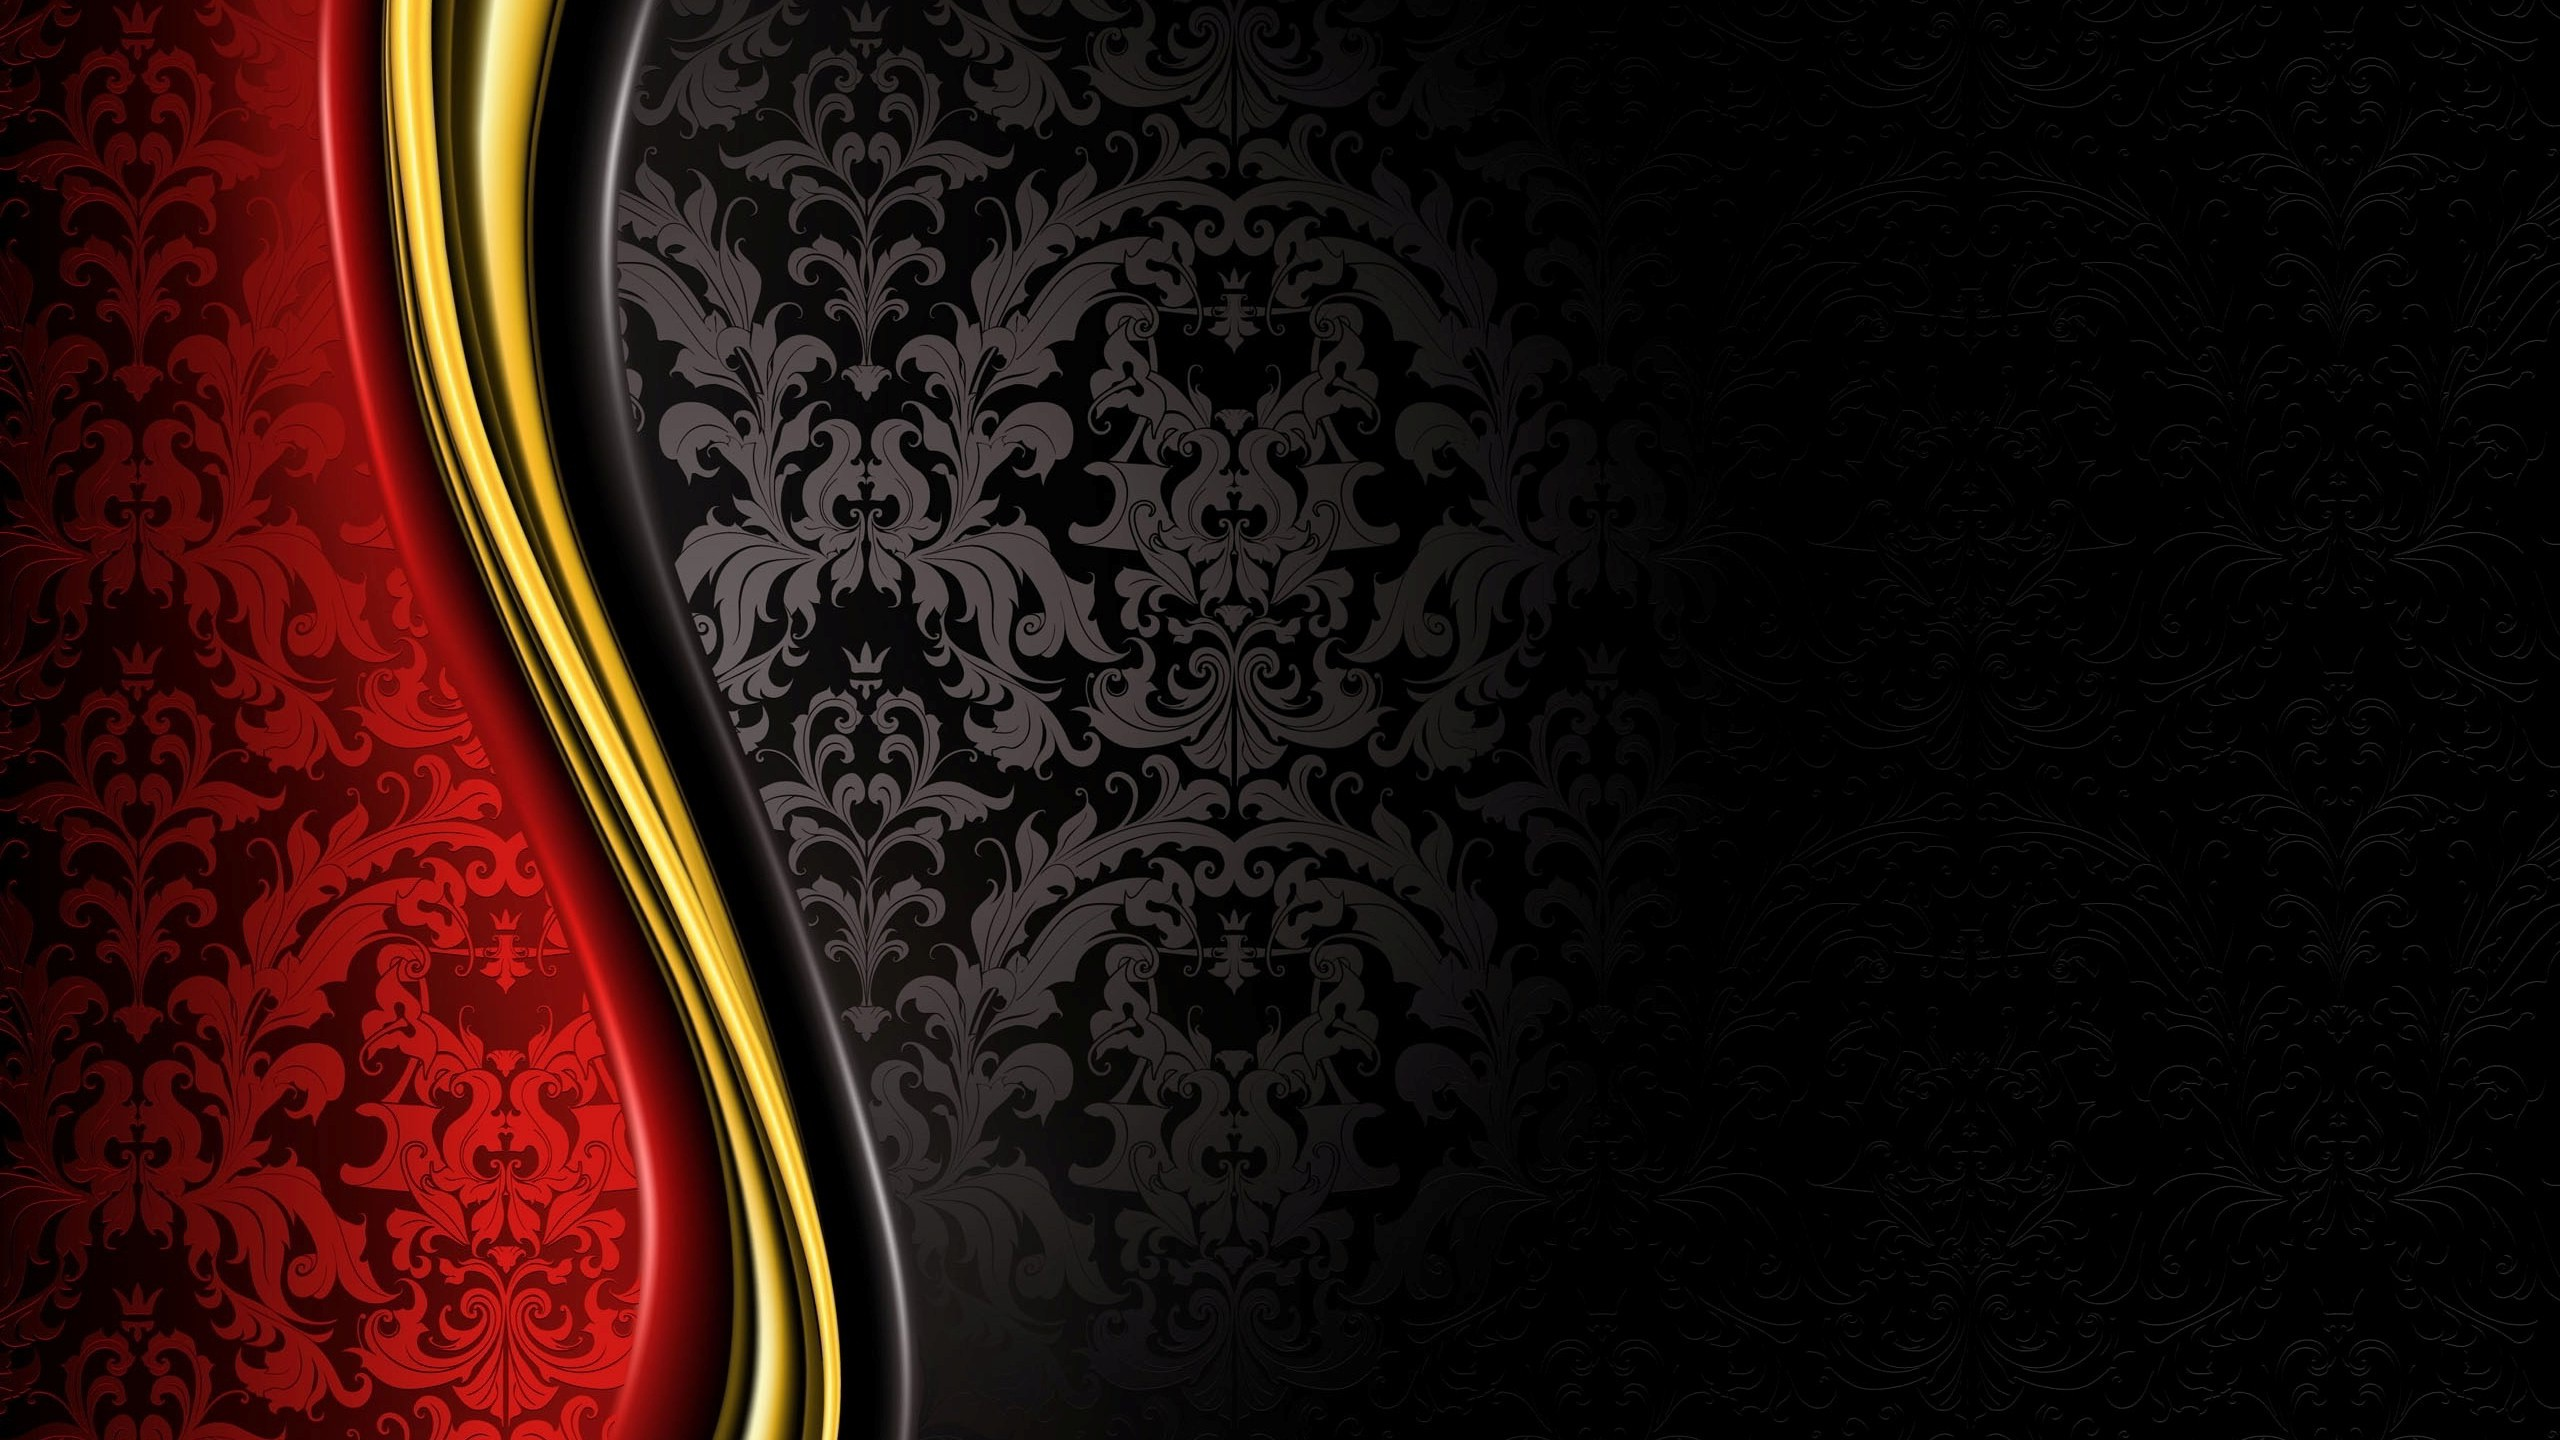 luxury, Royal, Grand, Black, Gold, Red, Abstract Wallpapers HD / Desktop and Mobile Backgrounds